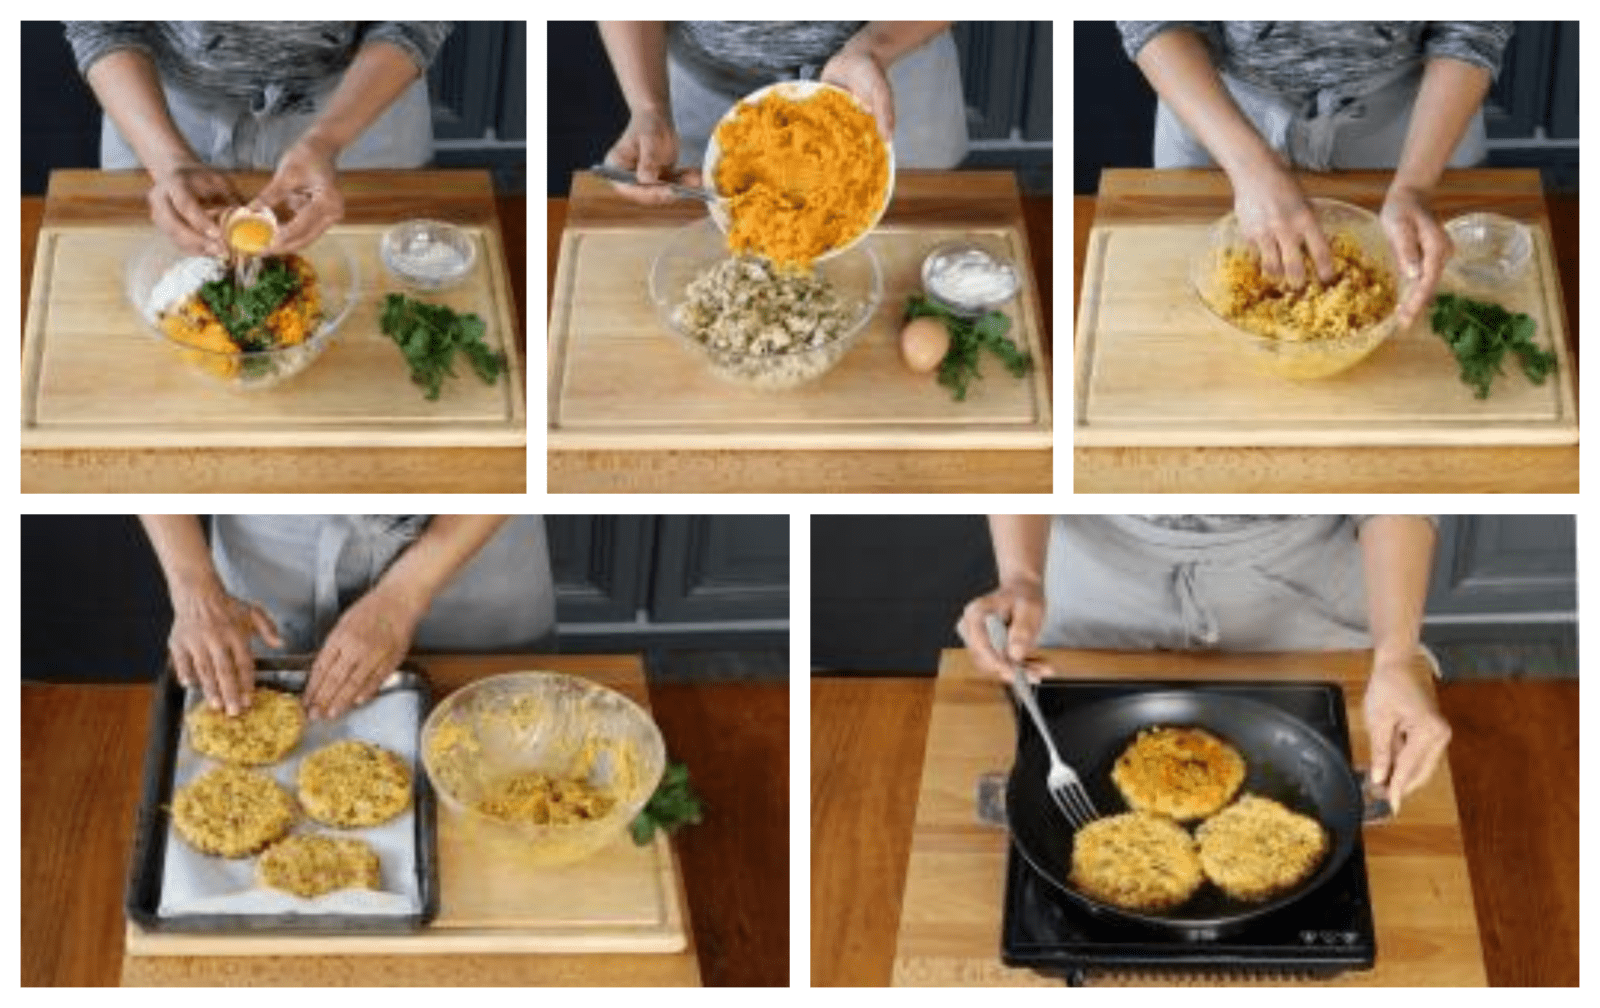 How to cook the patties of the hamburgers